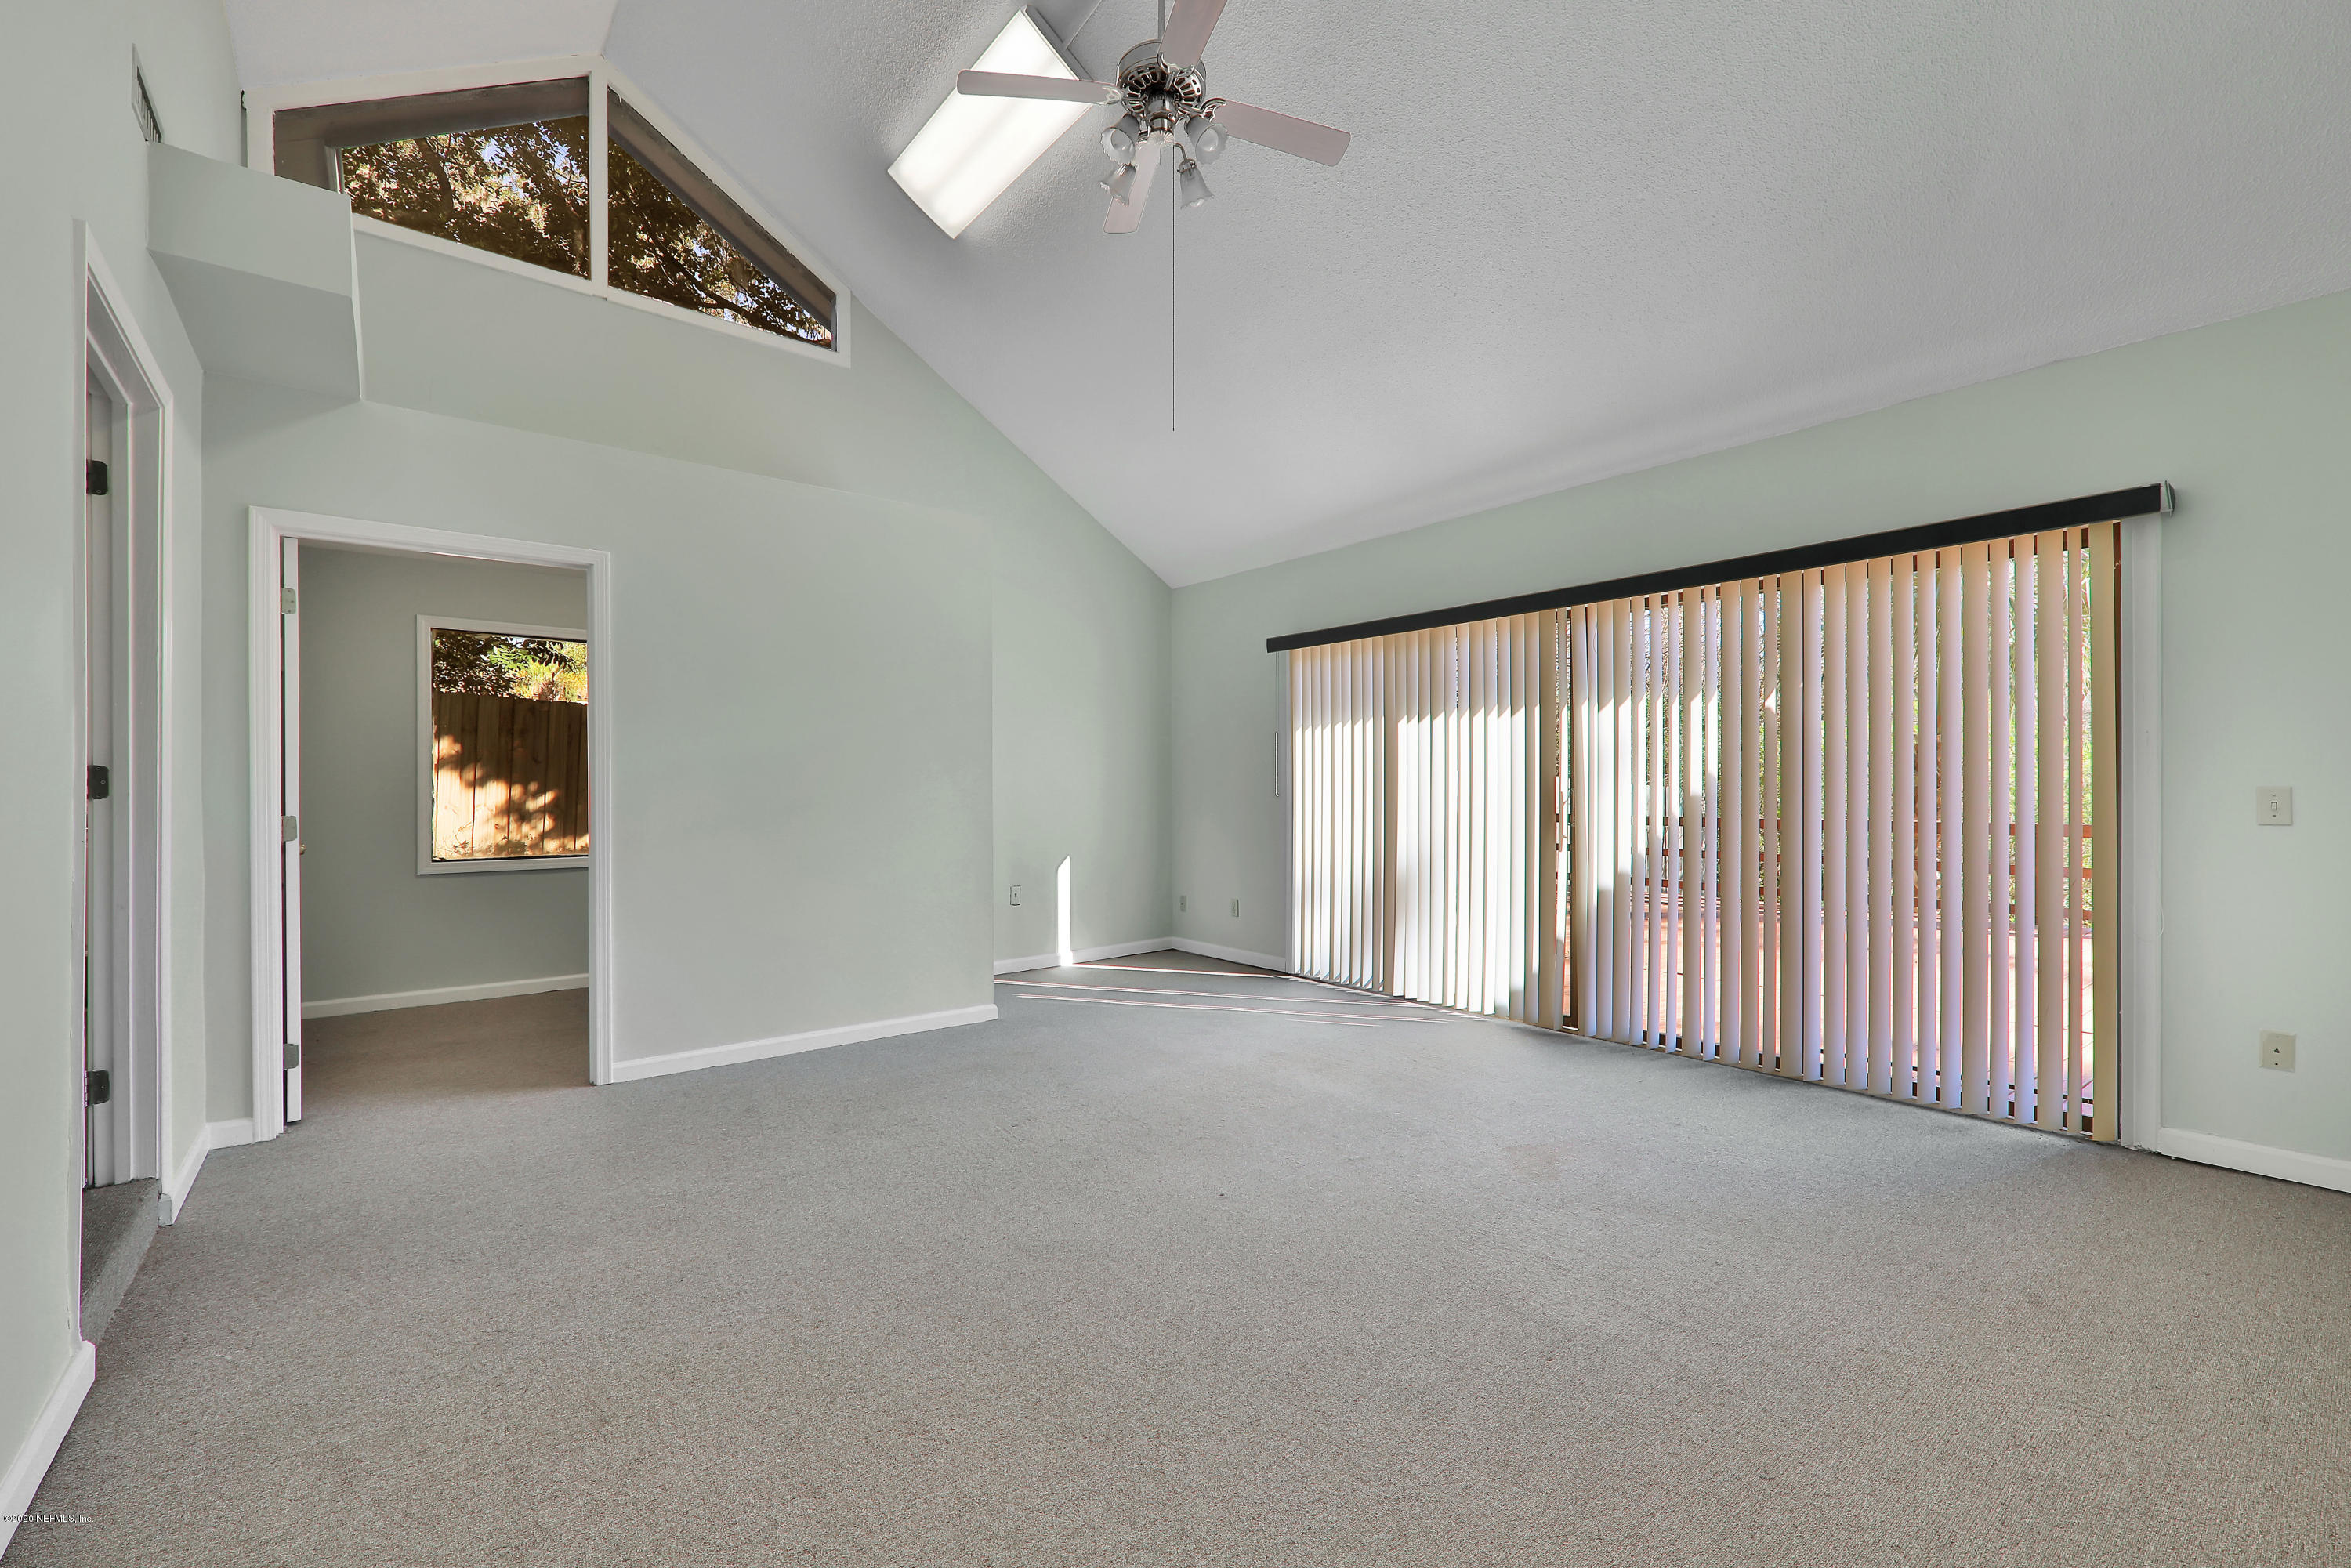 Image 10 of 35 For 4043 Baymeadows Rd